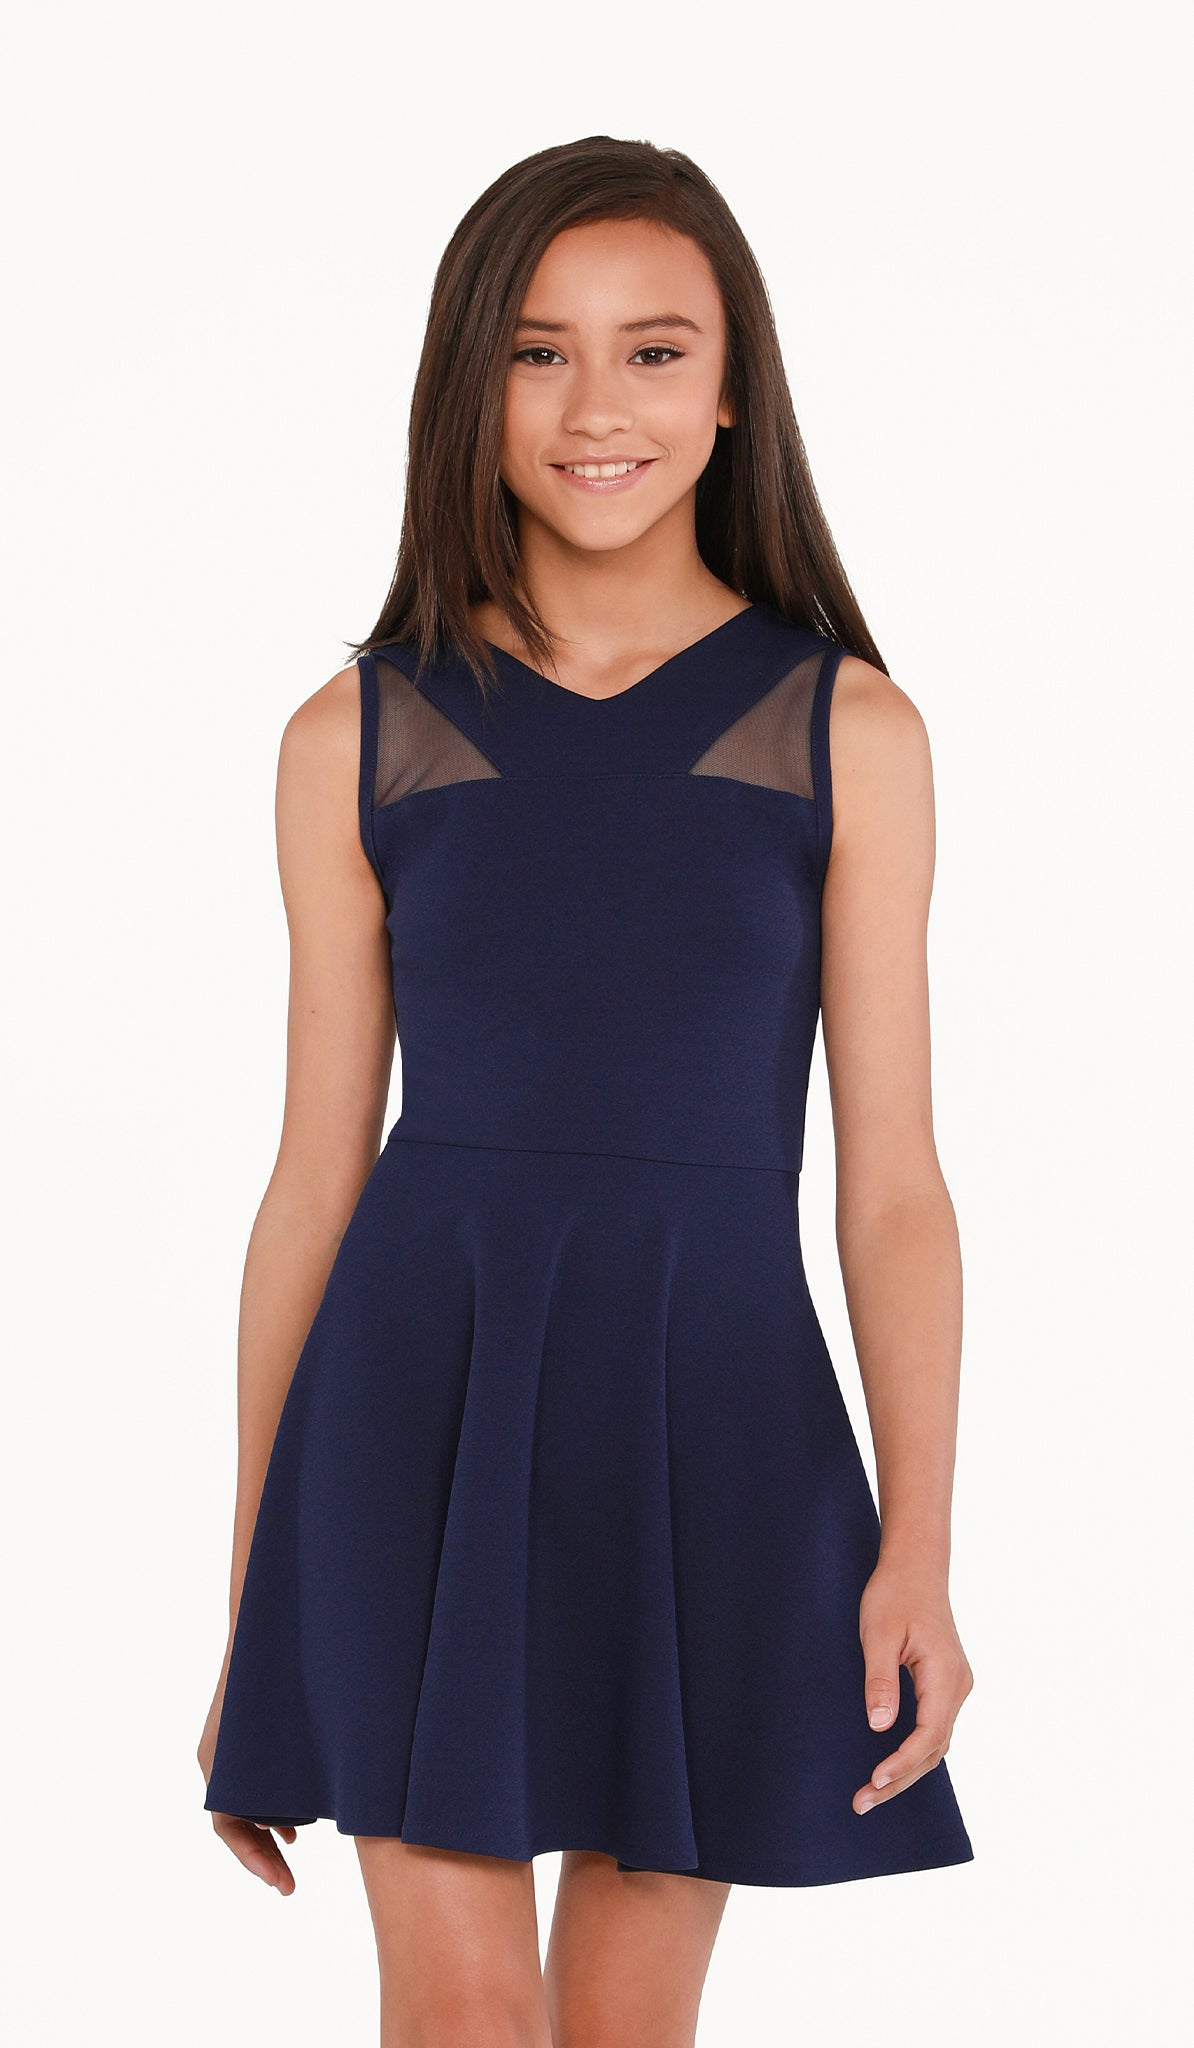 The Sally Miller Jill Dress - Navy stretch knit fit and flare V-neck dress with illusion neck yoke